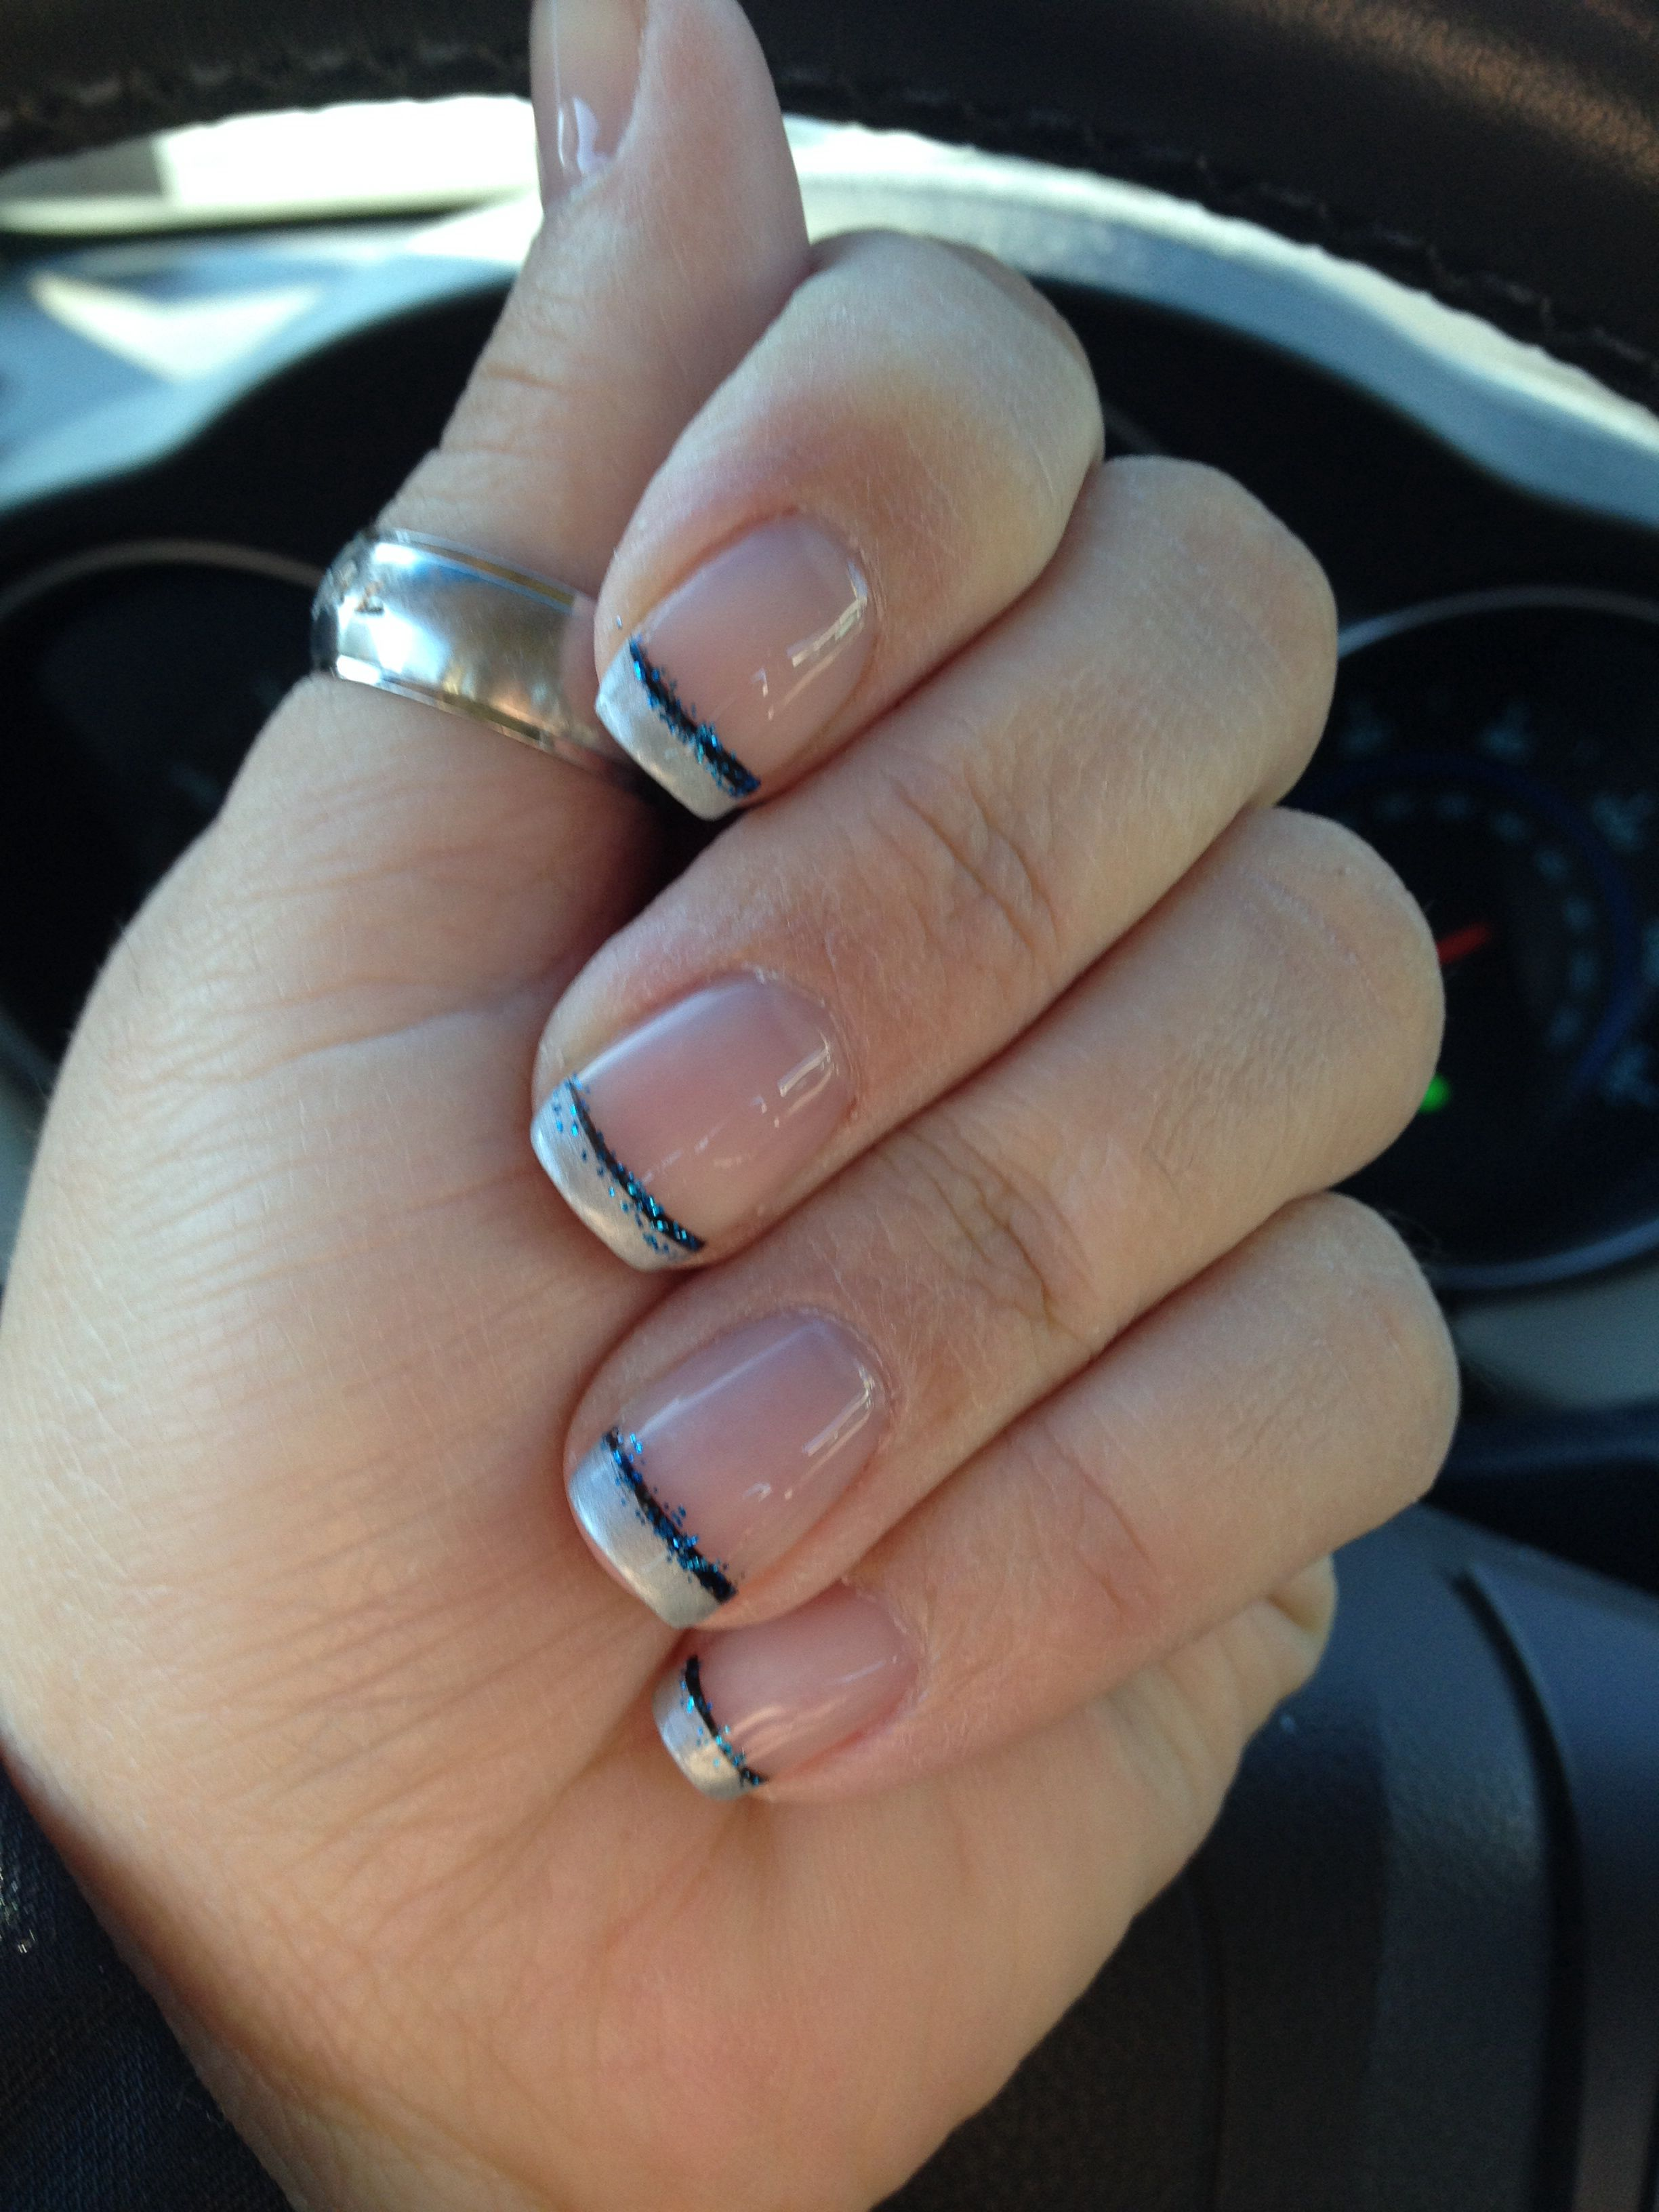 Silver French tip with black accent line and blue glitter